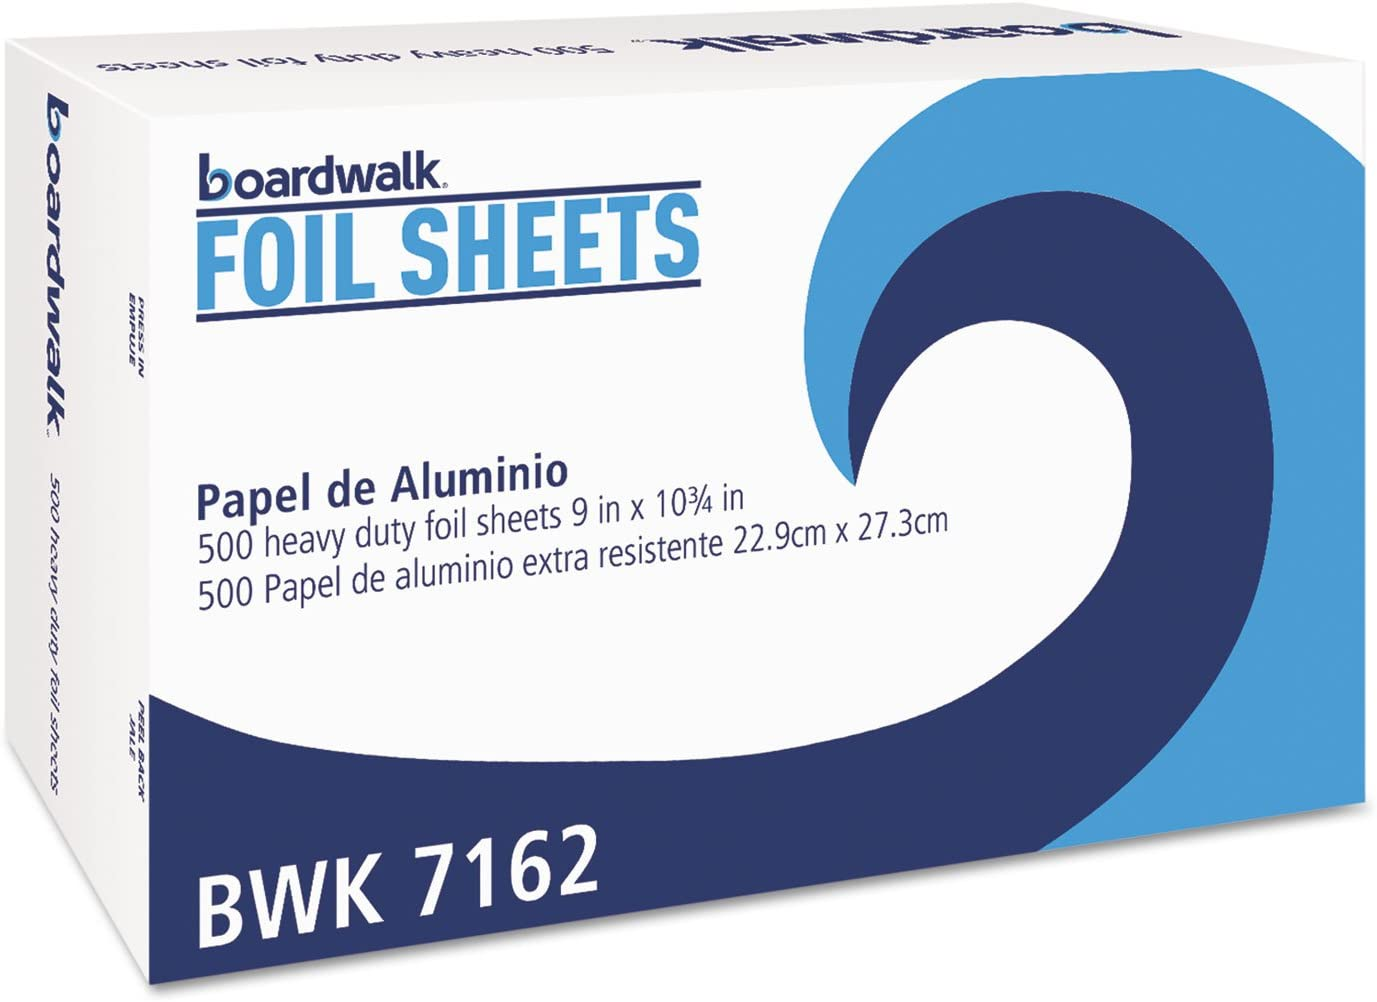 Boardwalk 7162 Pop-Up Aluminum Foil Wrap Sheets, 9 X 10 3/4, Silver, 500/box, 6 Boxes/carton